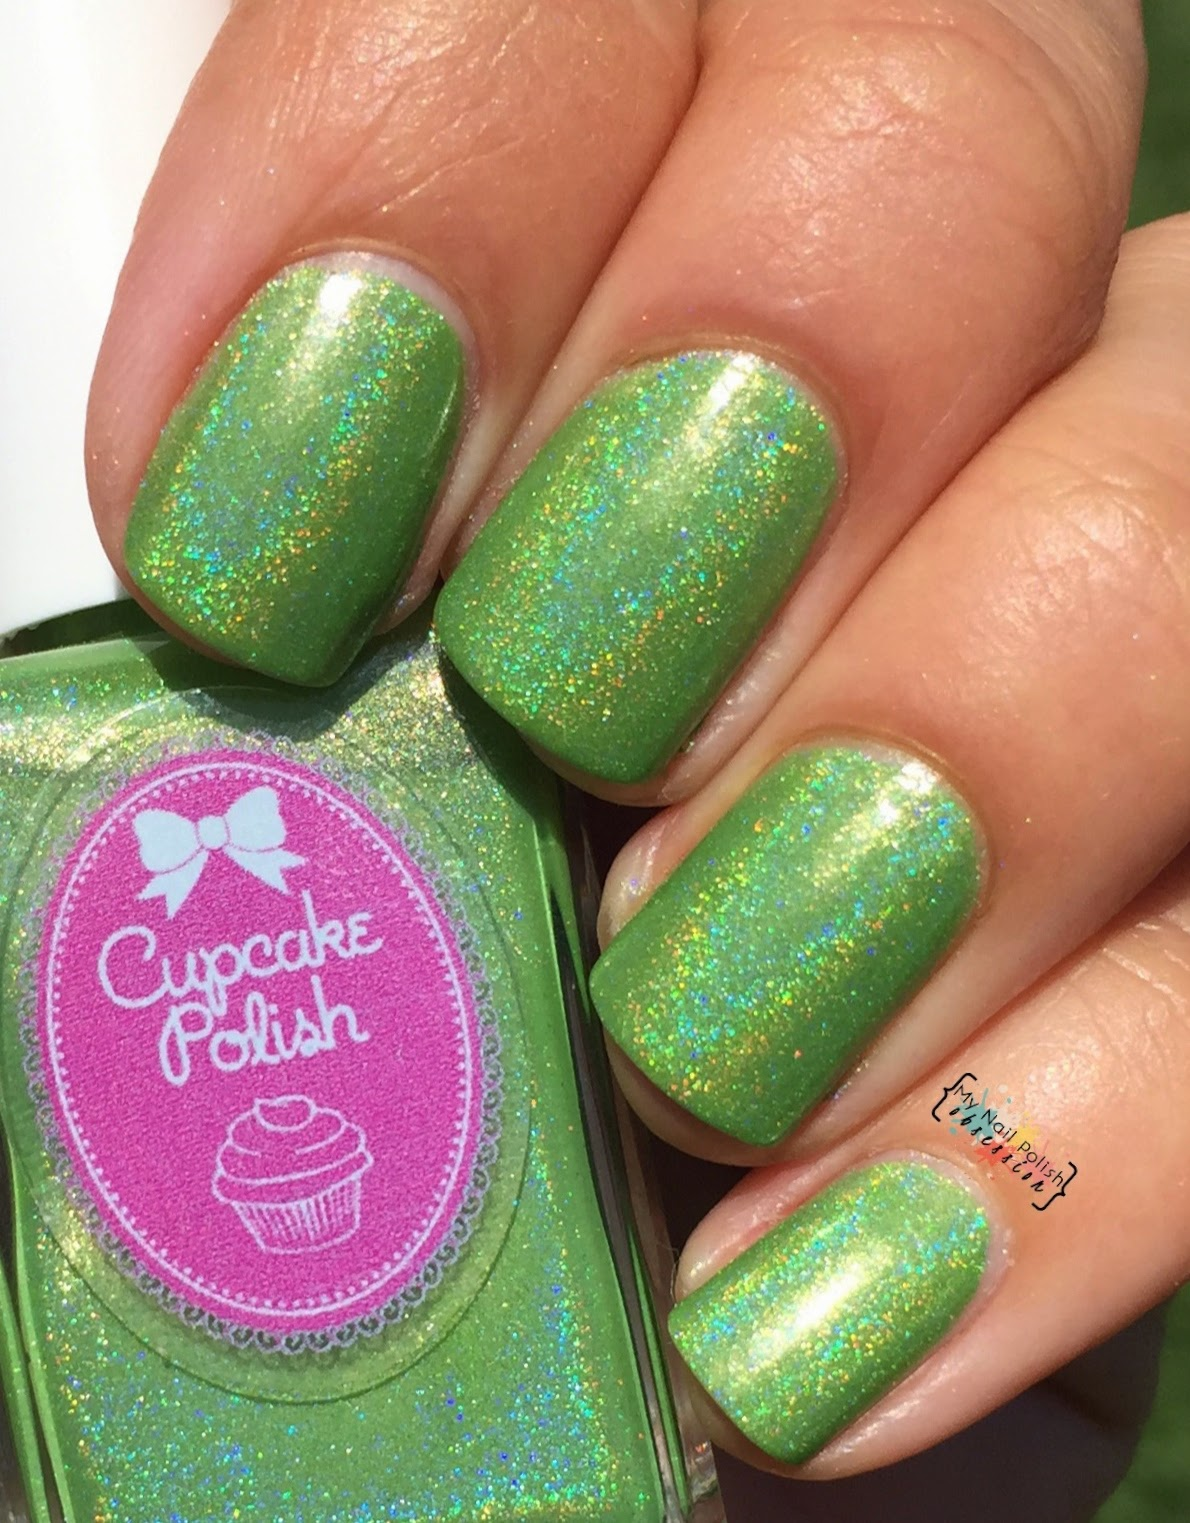 Cupcake Polish Instant Re-Leaf